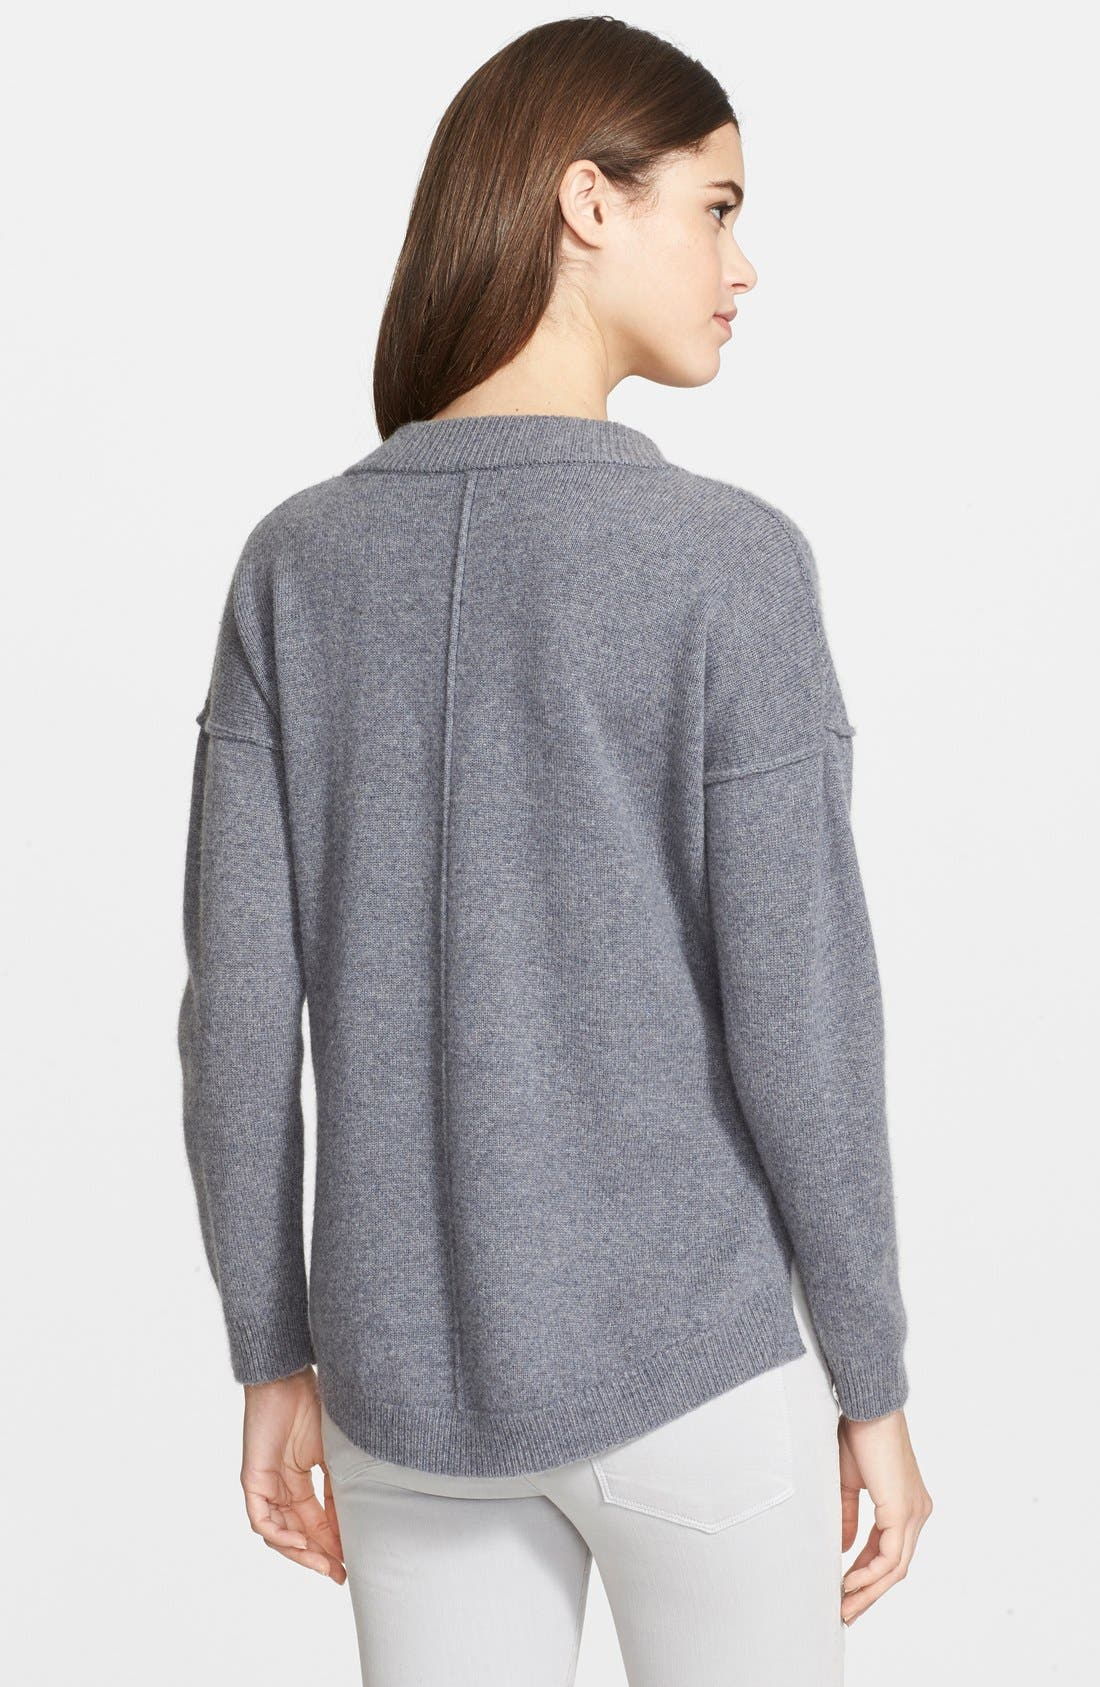 Alternate Image 2  - Frame Denim 'Le Boyfriend' V-Neck Cashmere Sweater